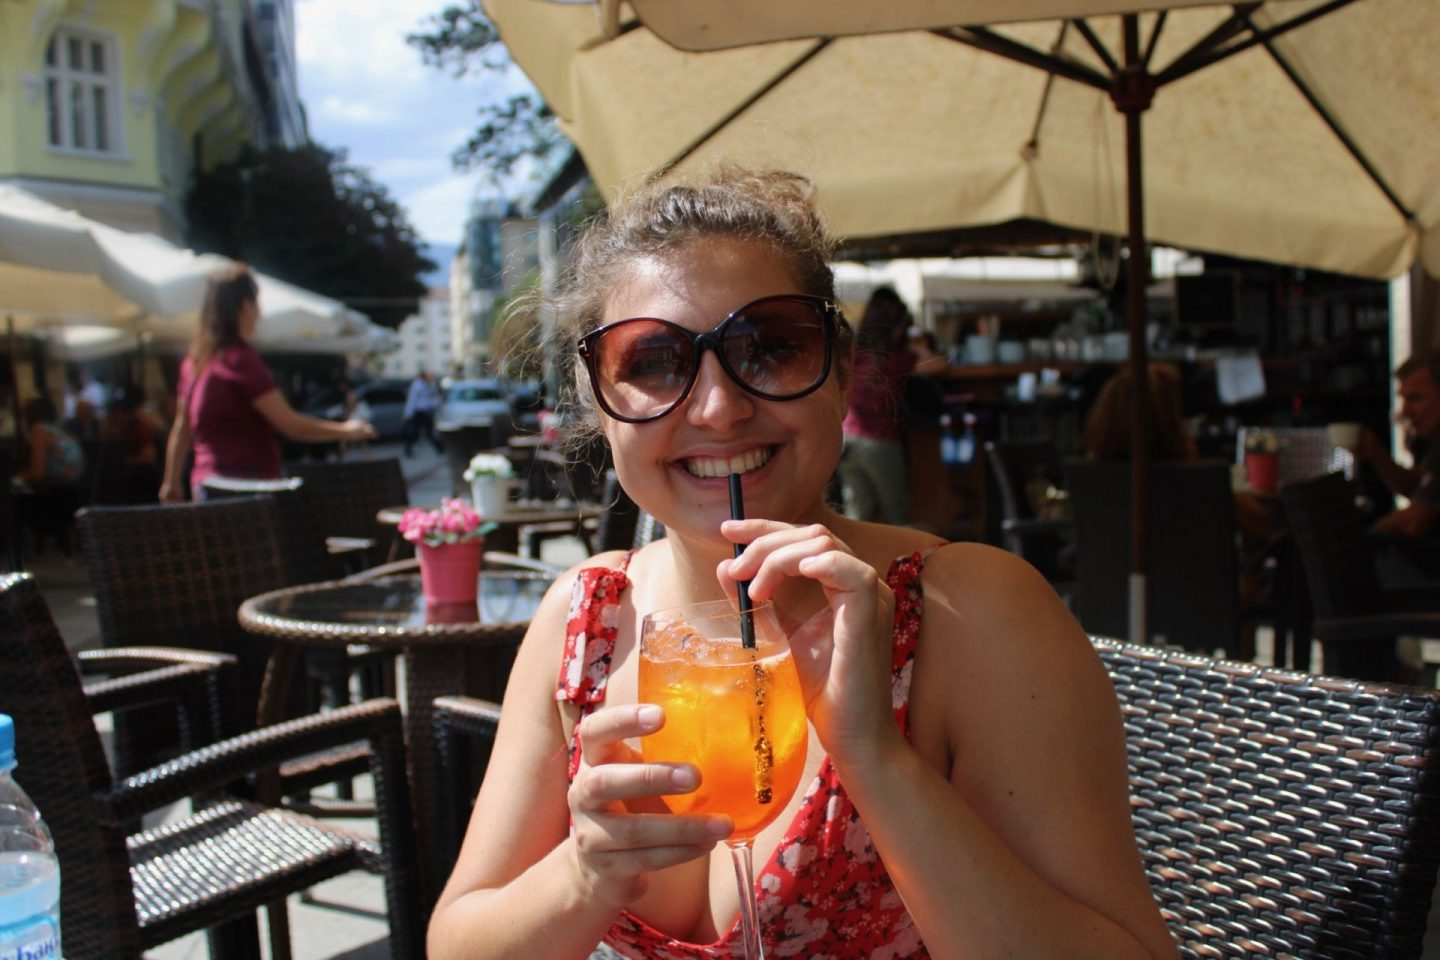 cheap european city break - Nell drinking an Aperol Spritz in Sofia, Bulgaria. She's wearing sunglasses, a red dress and smiling at the camera